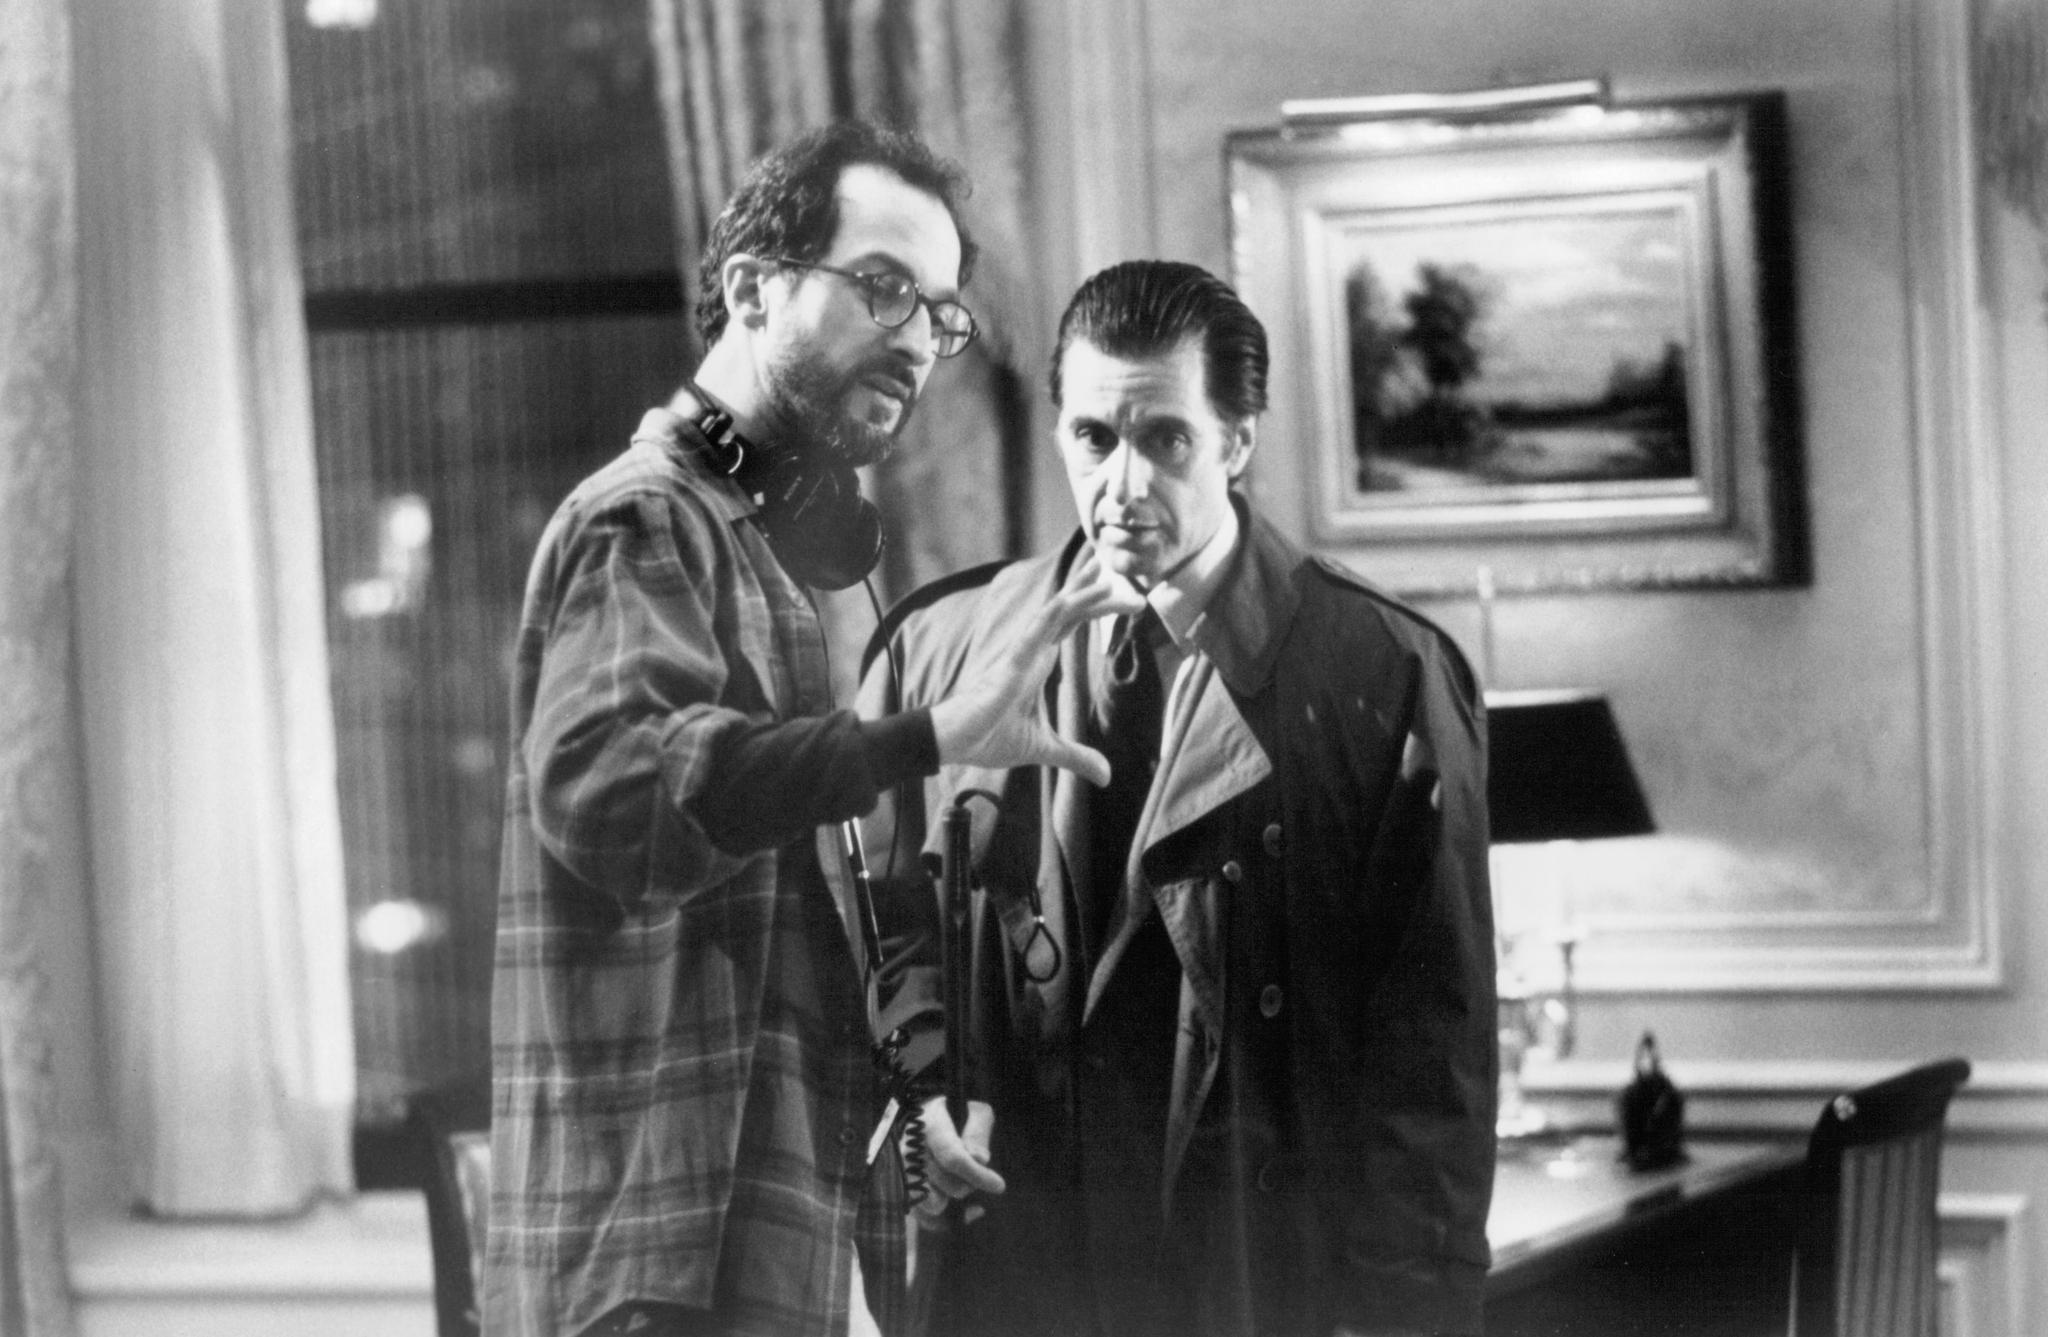 Al Pacino and Martin Brest in Scent of a Woman (1992)